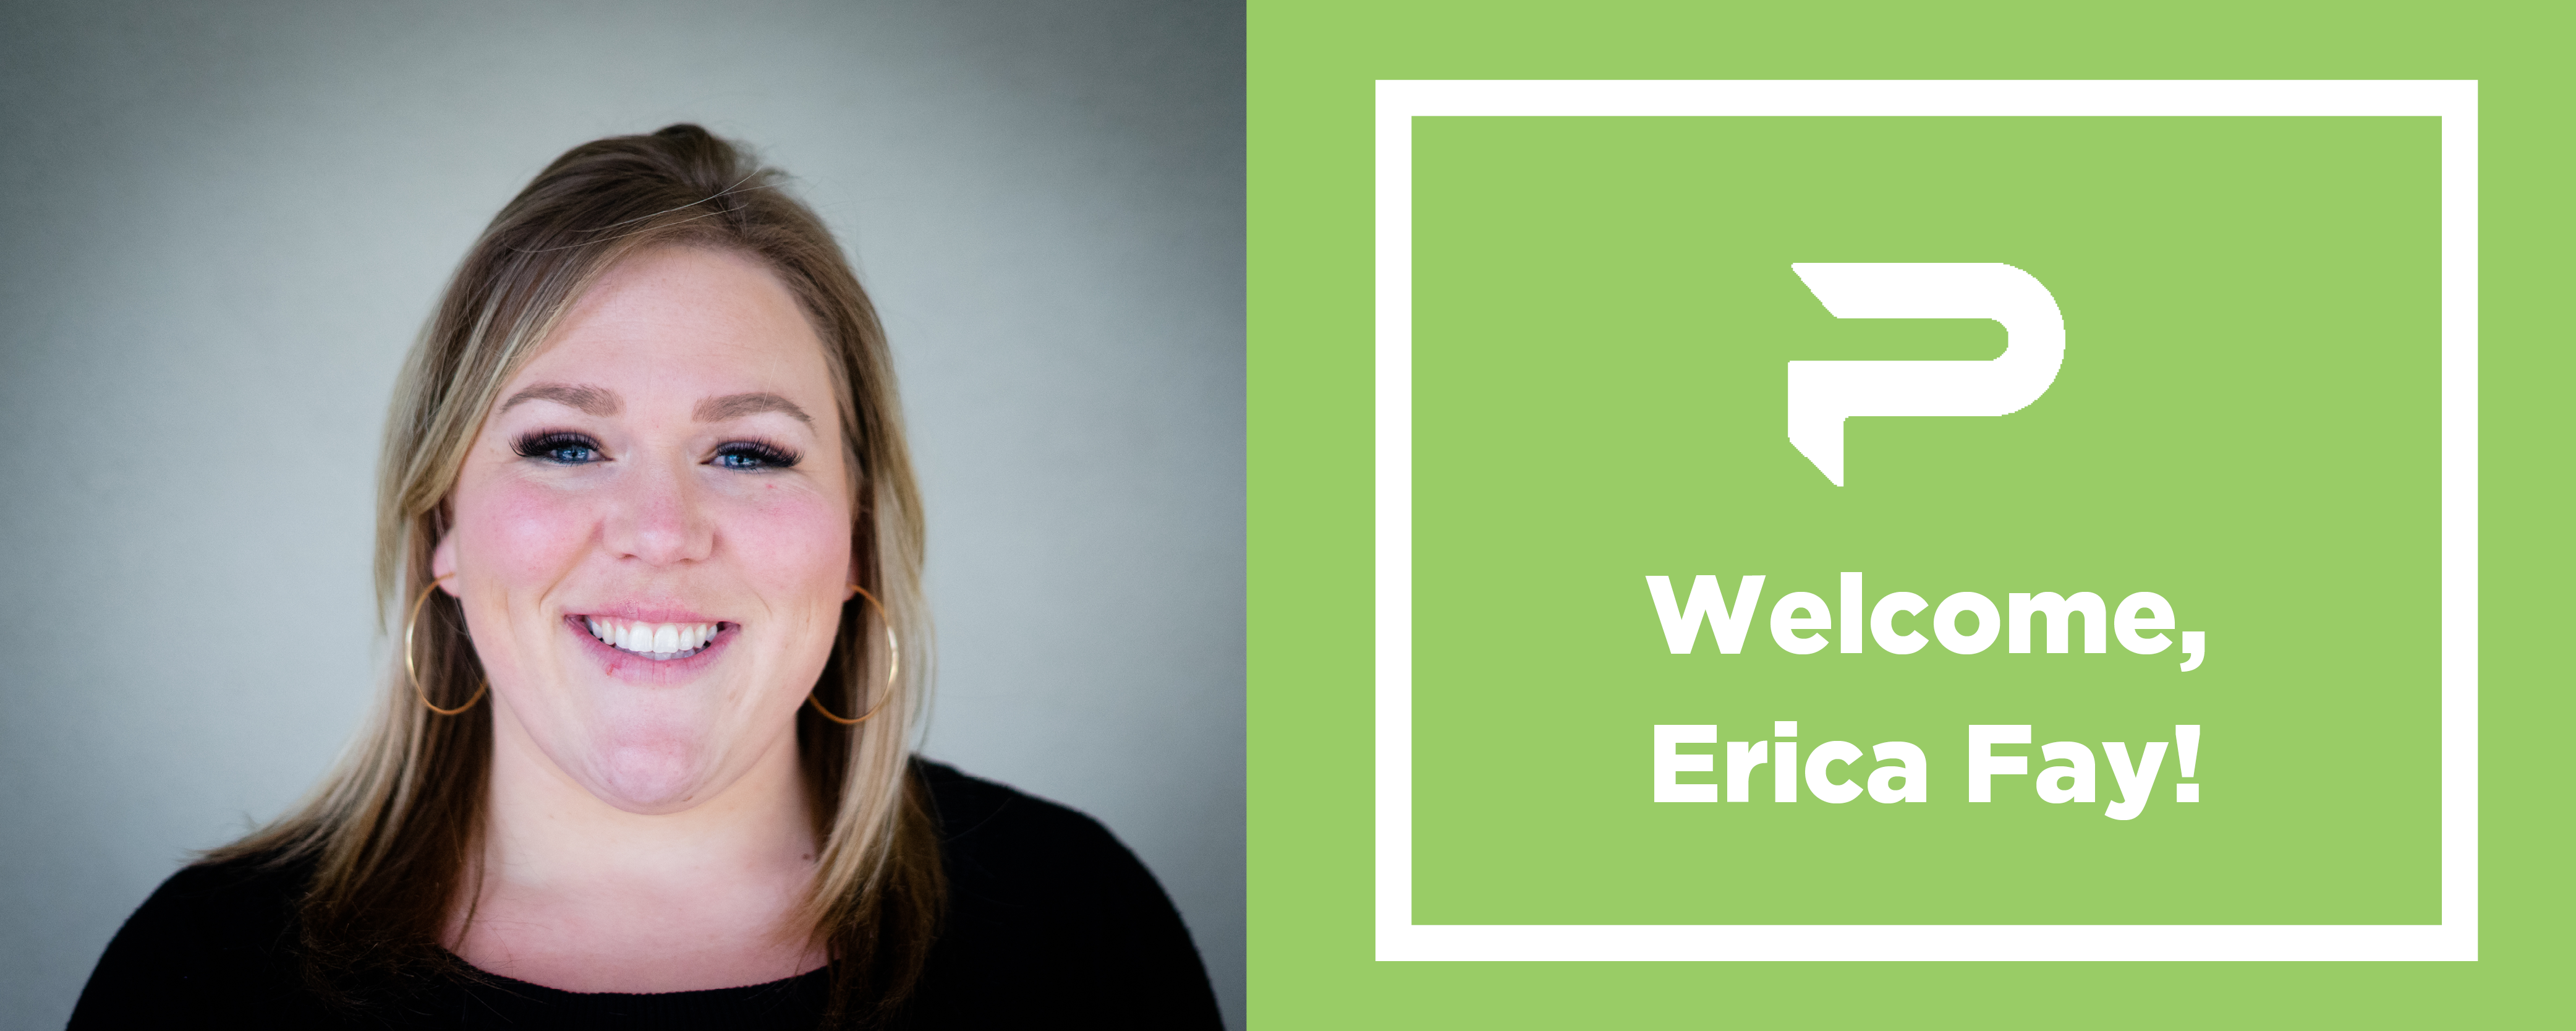 Precision Welcomes New Project Administrator, Erica Fay to the Team